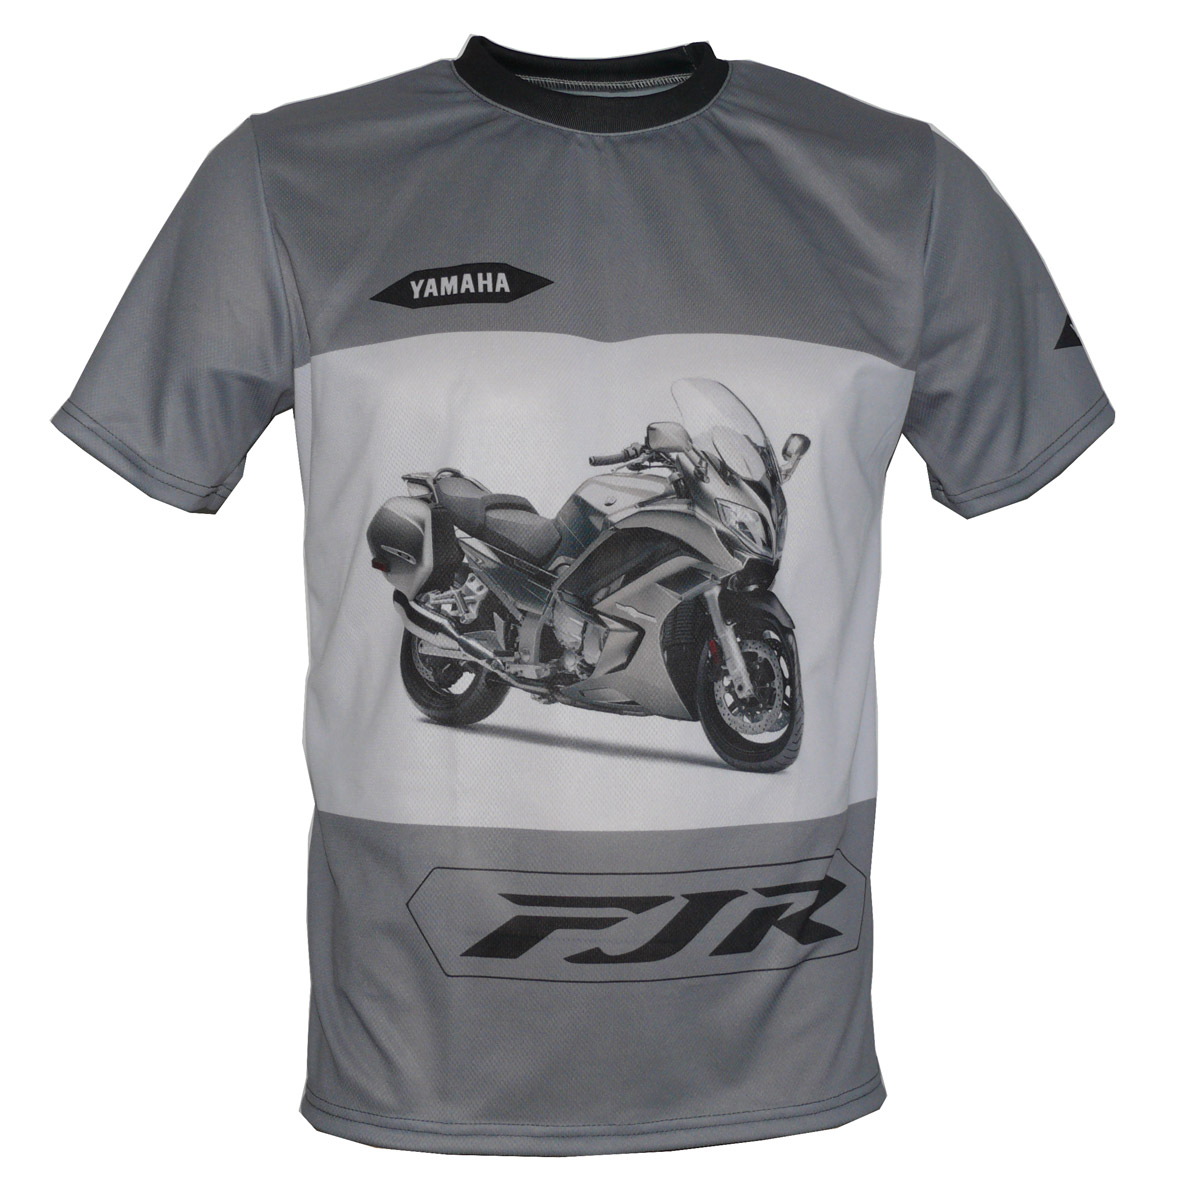 yamaha fjr 1300 t shirt with logo and all over printed. Black Bedroom Furniture Sets. Home Design Ideas